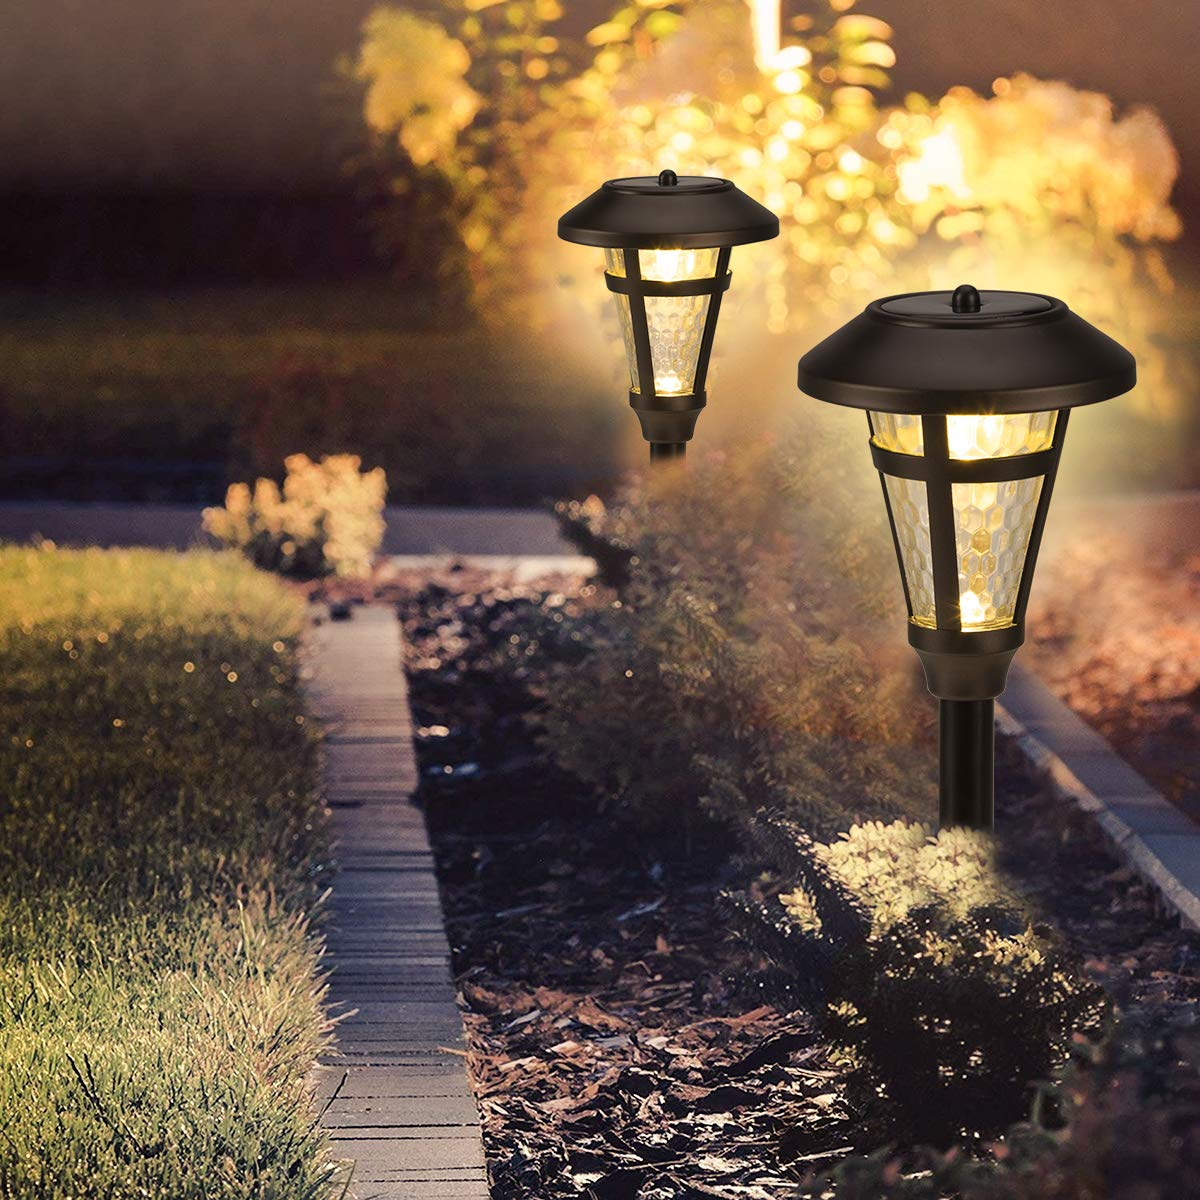 GIGALUMI 6 Pcs Solar Lights Outdoor, Bronze Finshed, Glass Lamp, Waterproof Led Solar Lights for Lawn?Patio?Yard?Garden?Pathway?Walkway and Driveway.